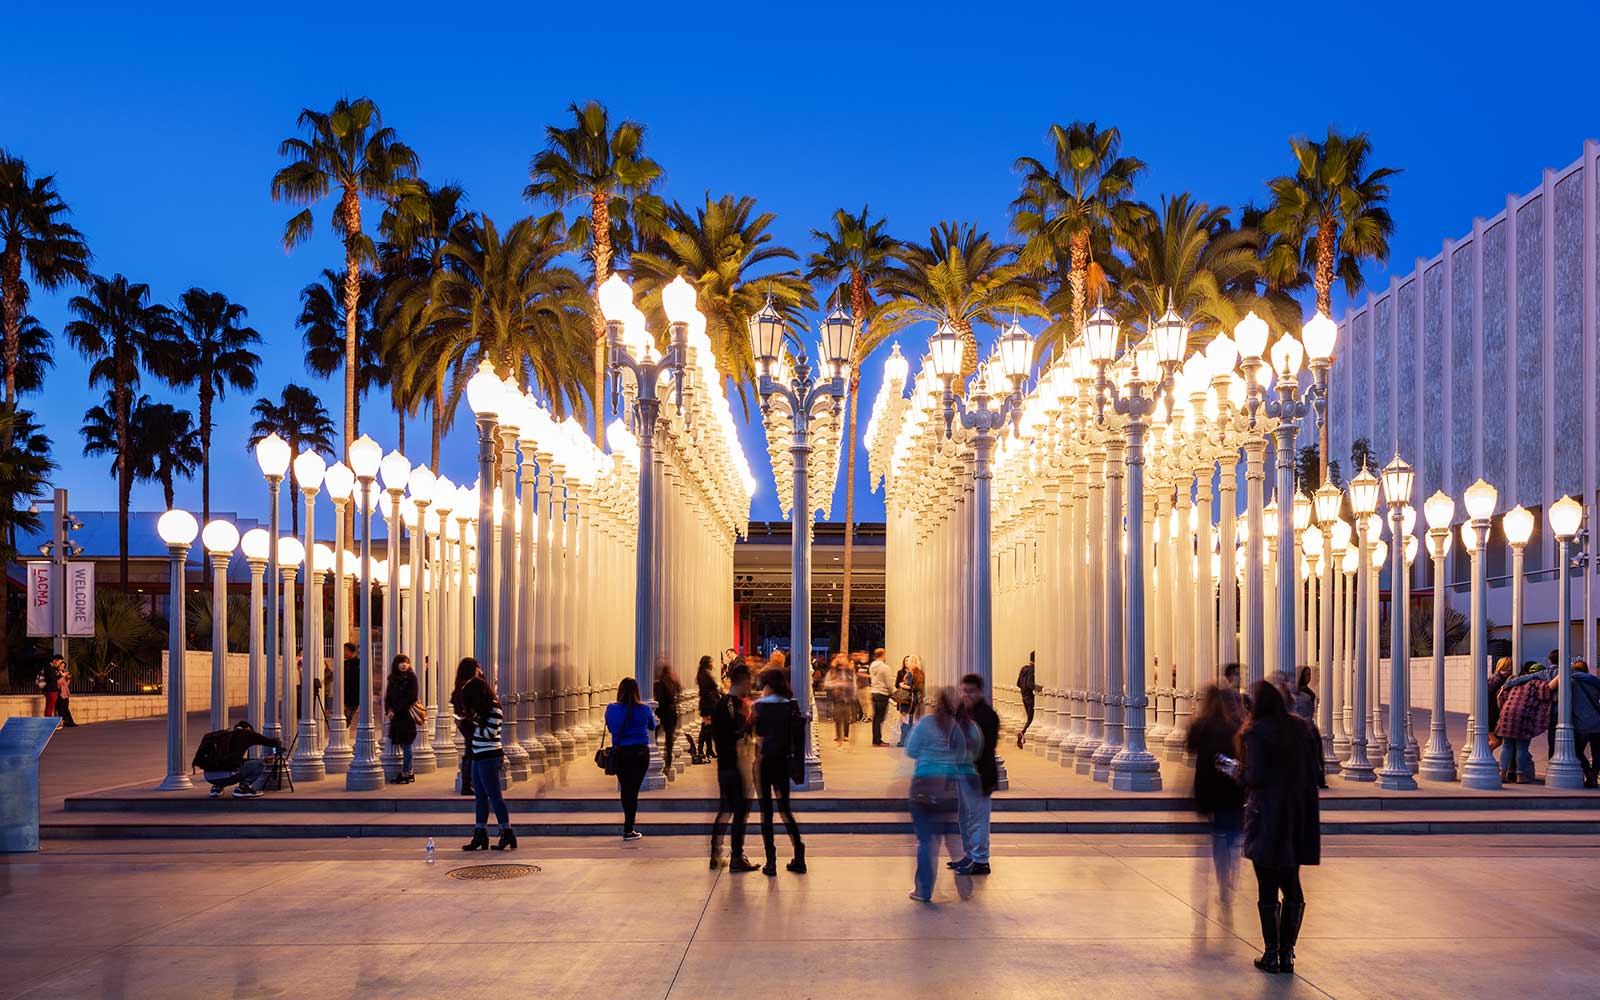 32 Los Angeles Museums Will Be Free This Weekend